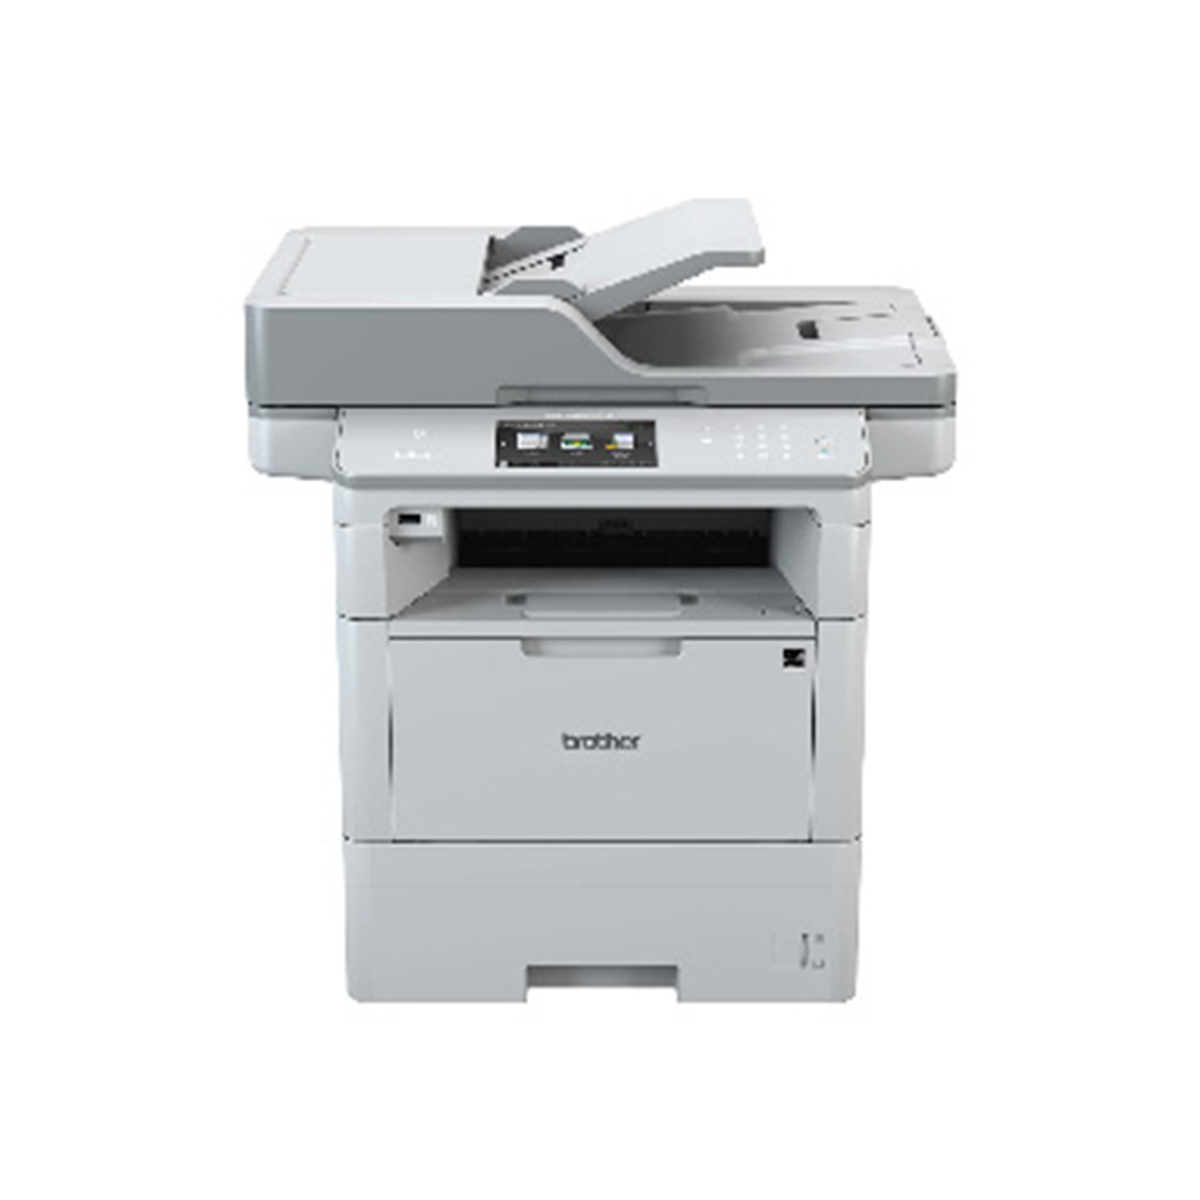 Brother DCP-L6600DW A Grade - Refurbished Machine